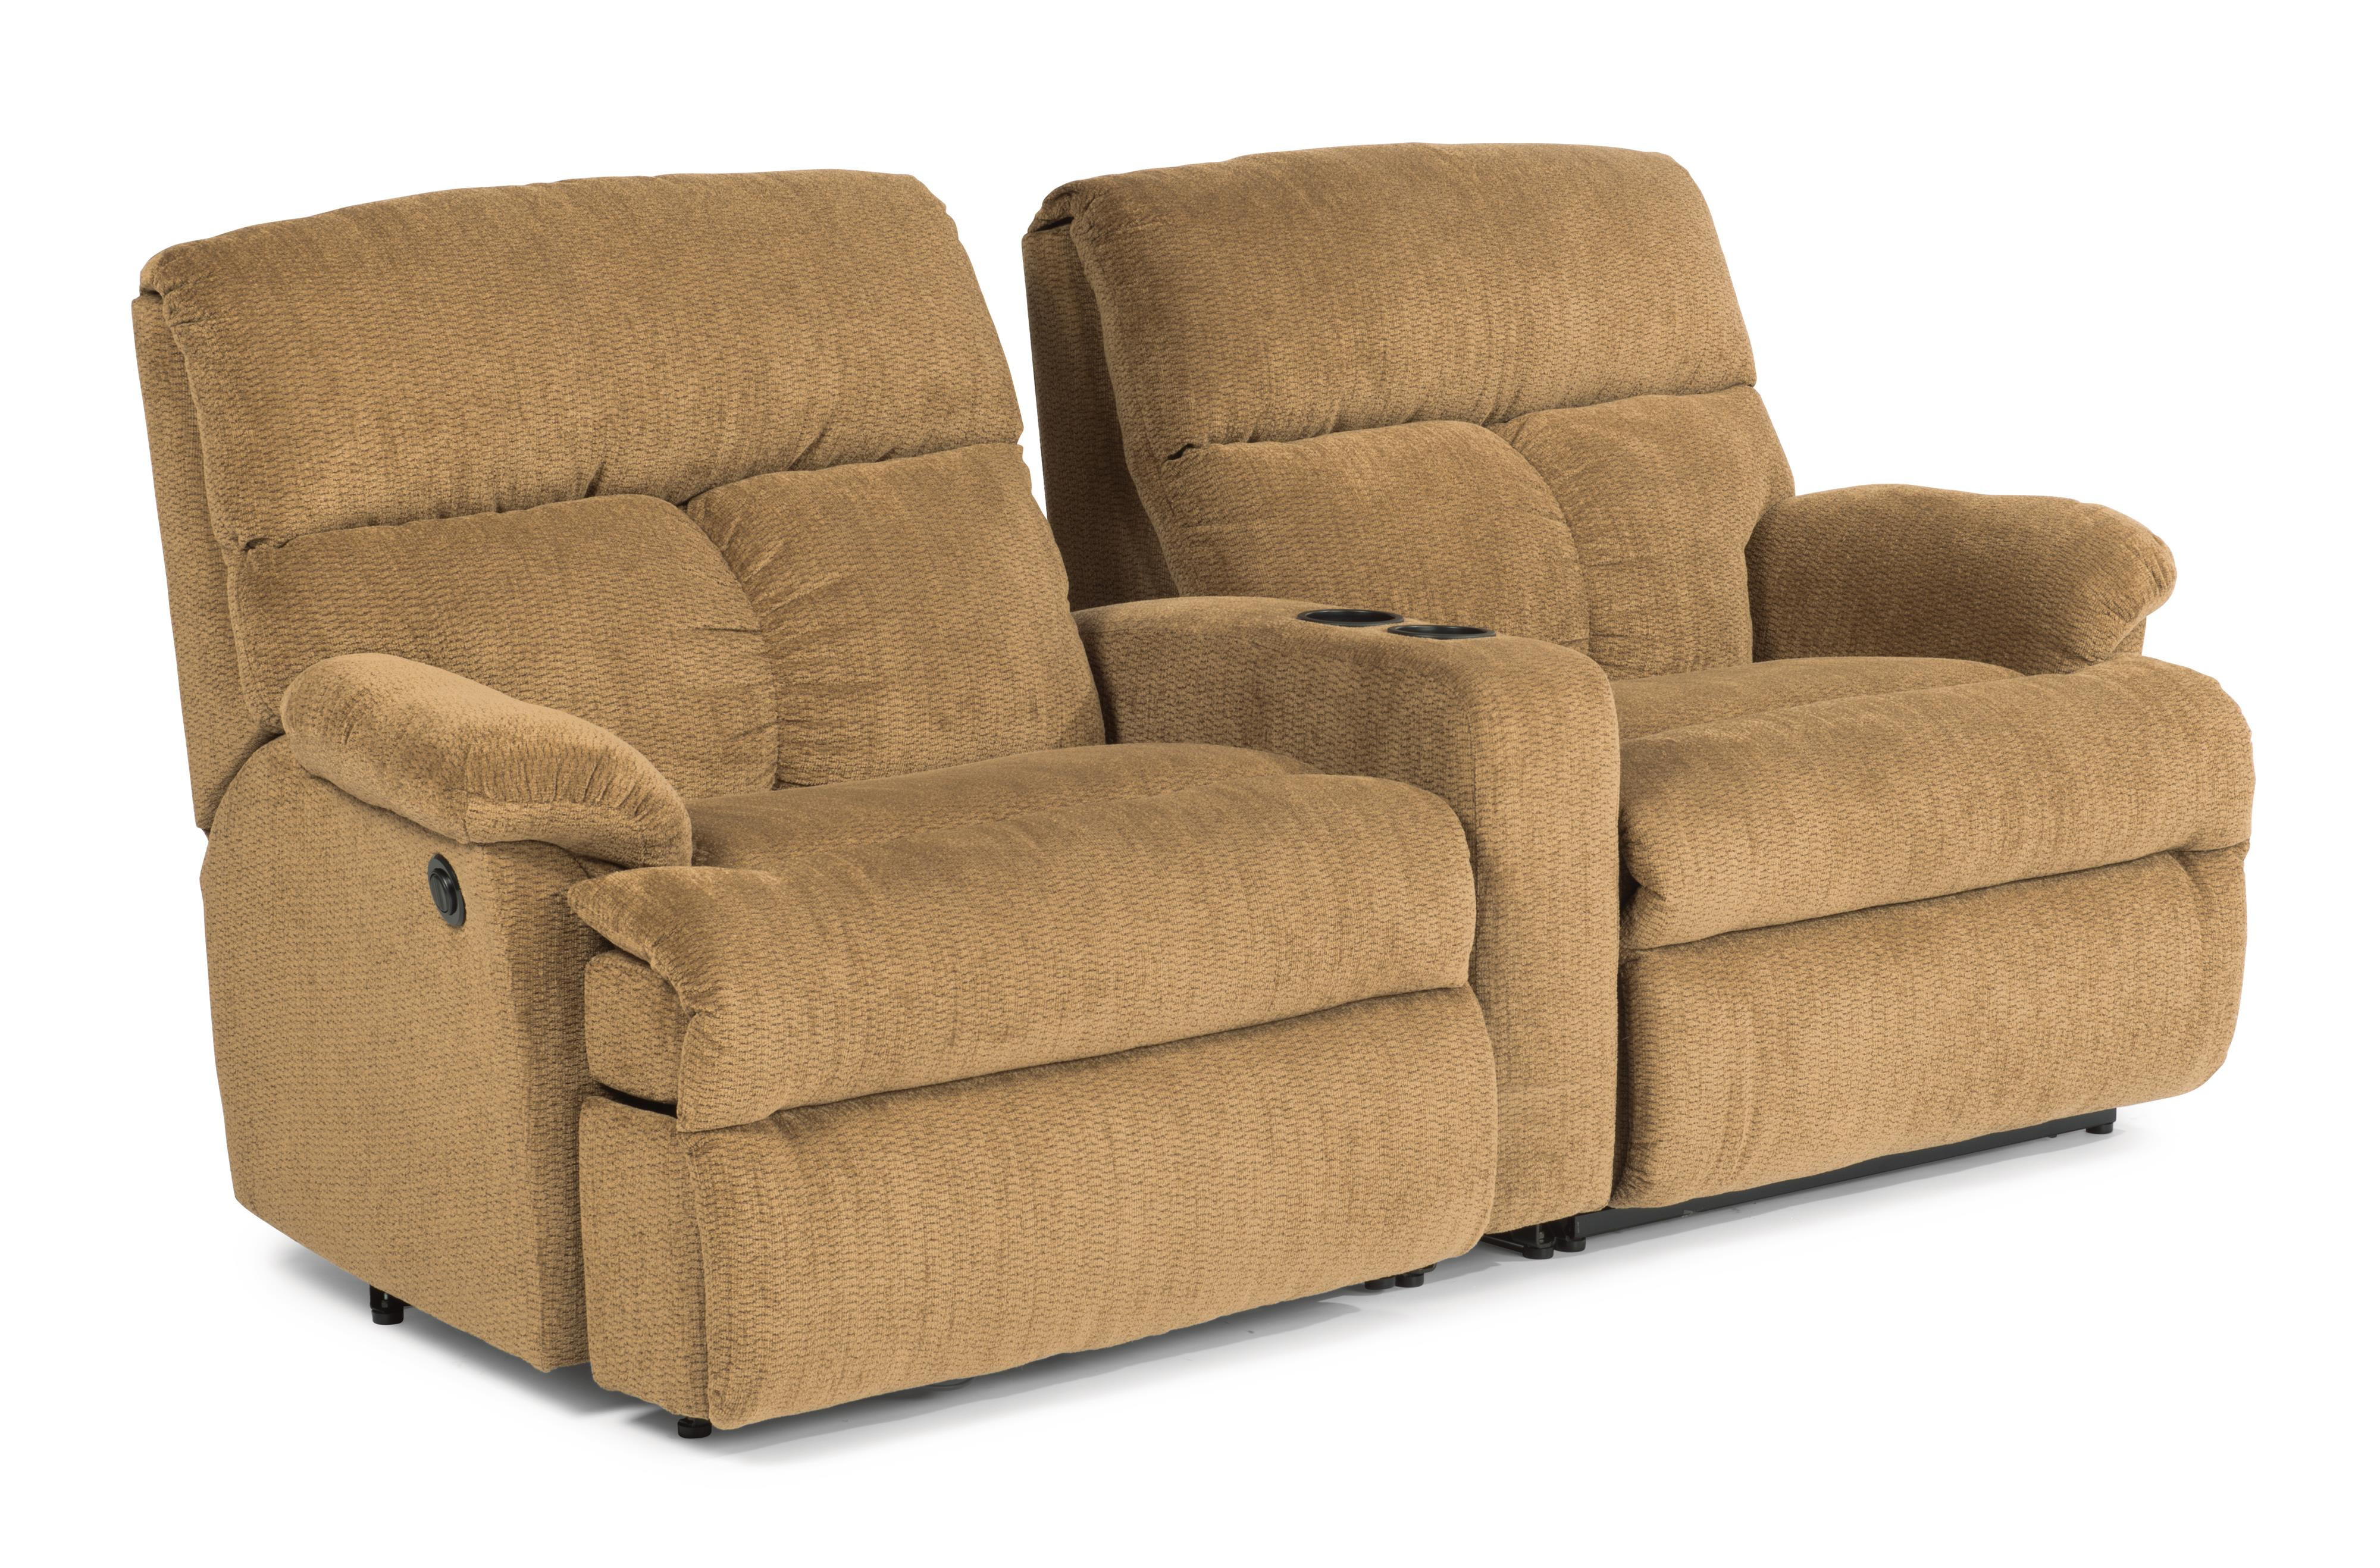 luxury best sectional sofa brands construction-Lovely Best Sectional sofa Brands Image